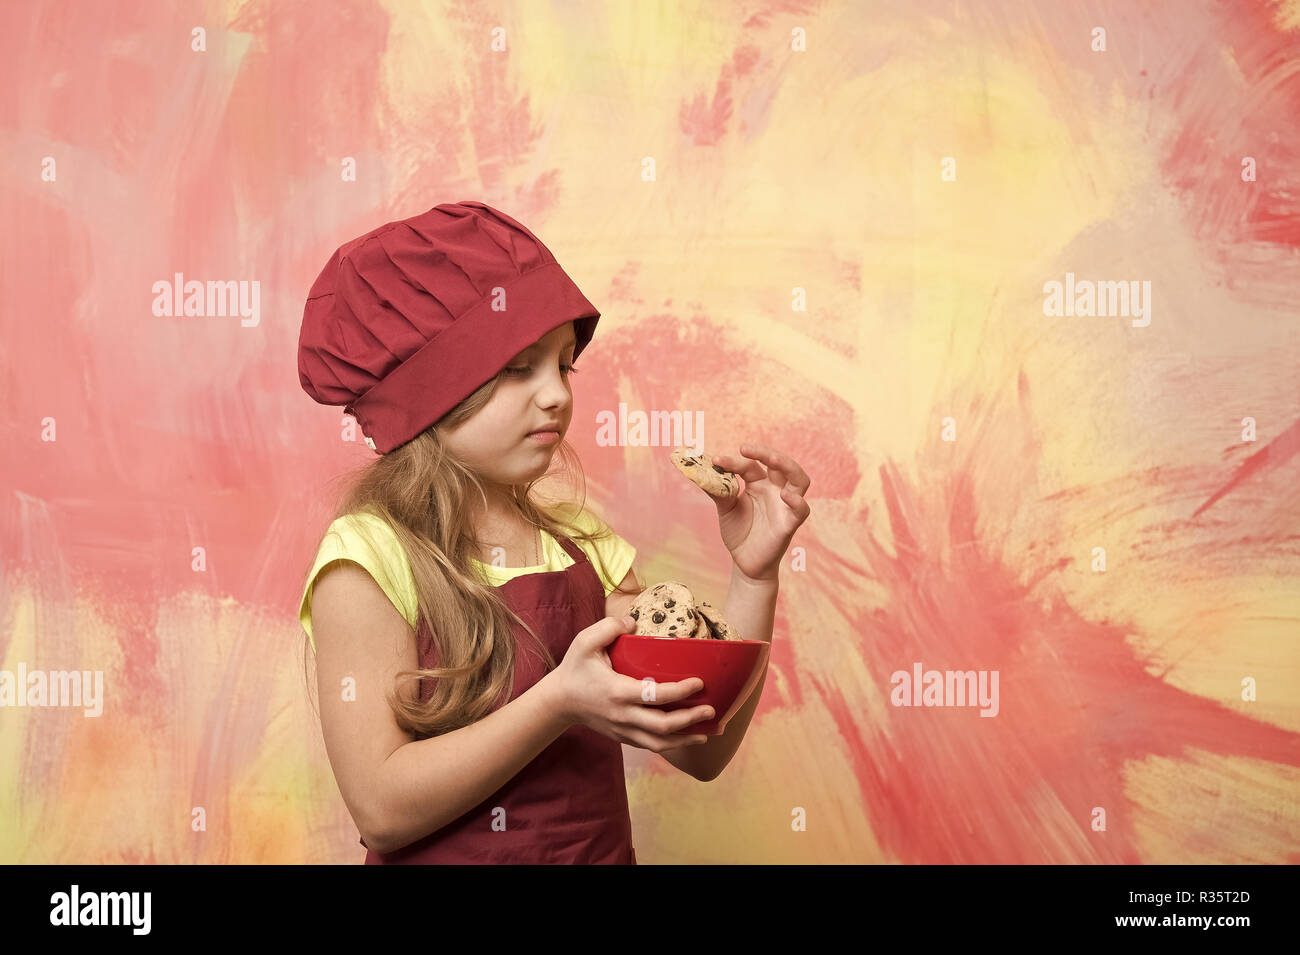 cookies or biscuits in bowl in hand of chef kid or small girl in cook hat and apron with distaste on face on colorful background, copy space - Stock Image